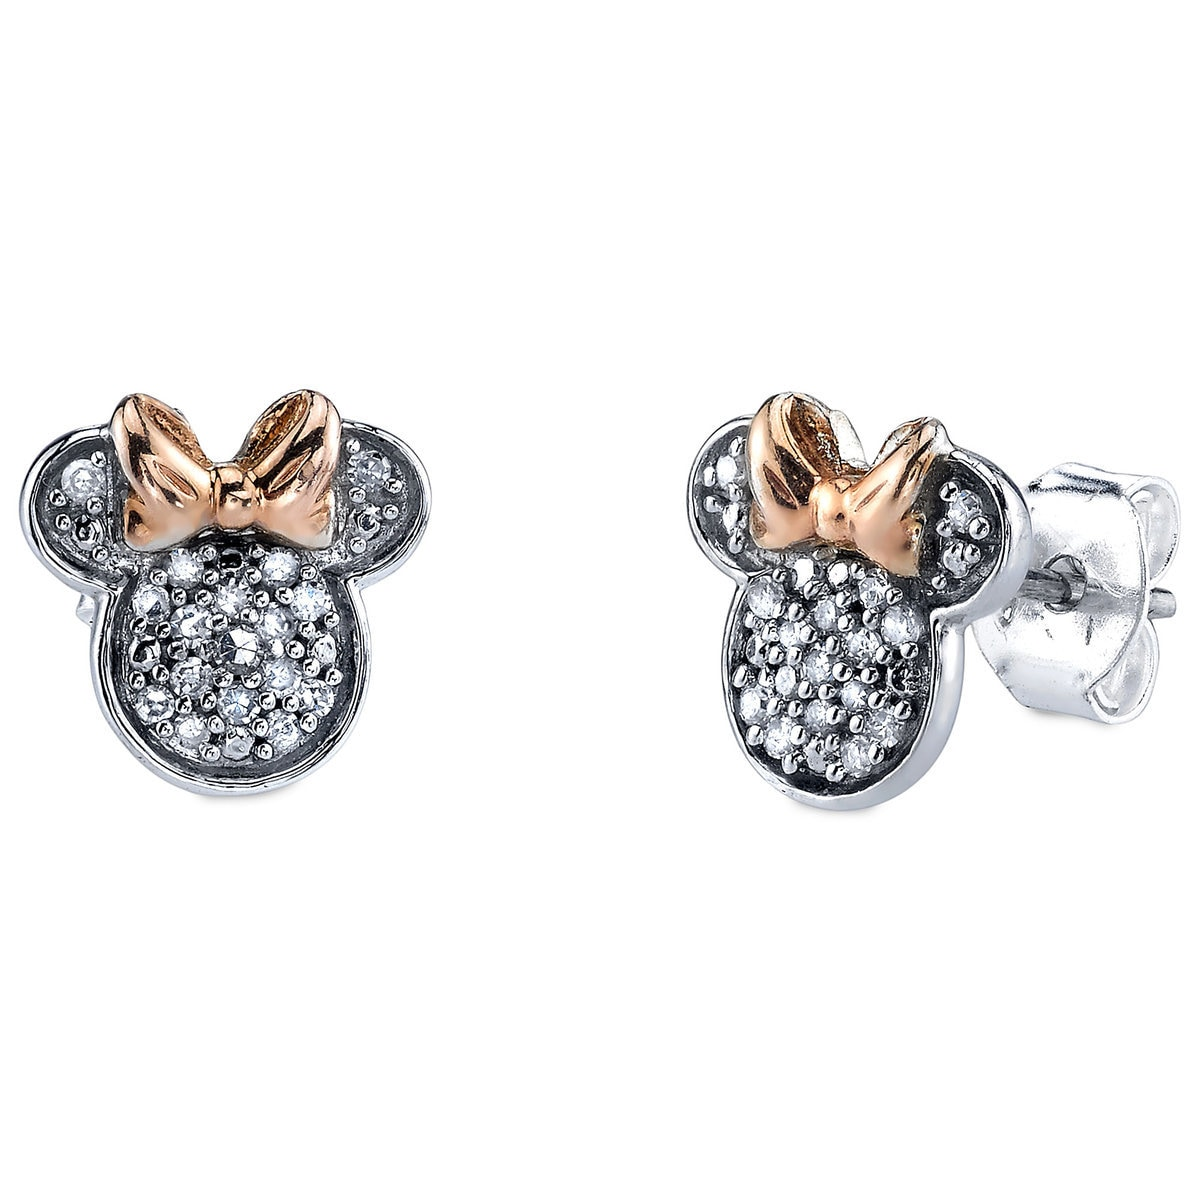 tw rollover earings ct phab detailmain hoop jewellery earrings rose in diamond gold main lrg lucille